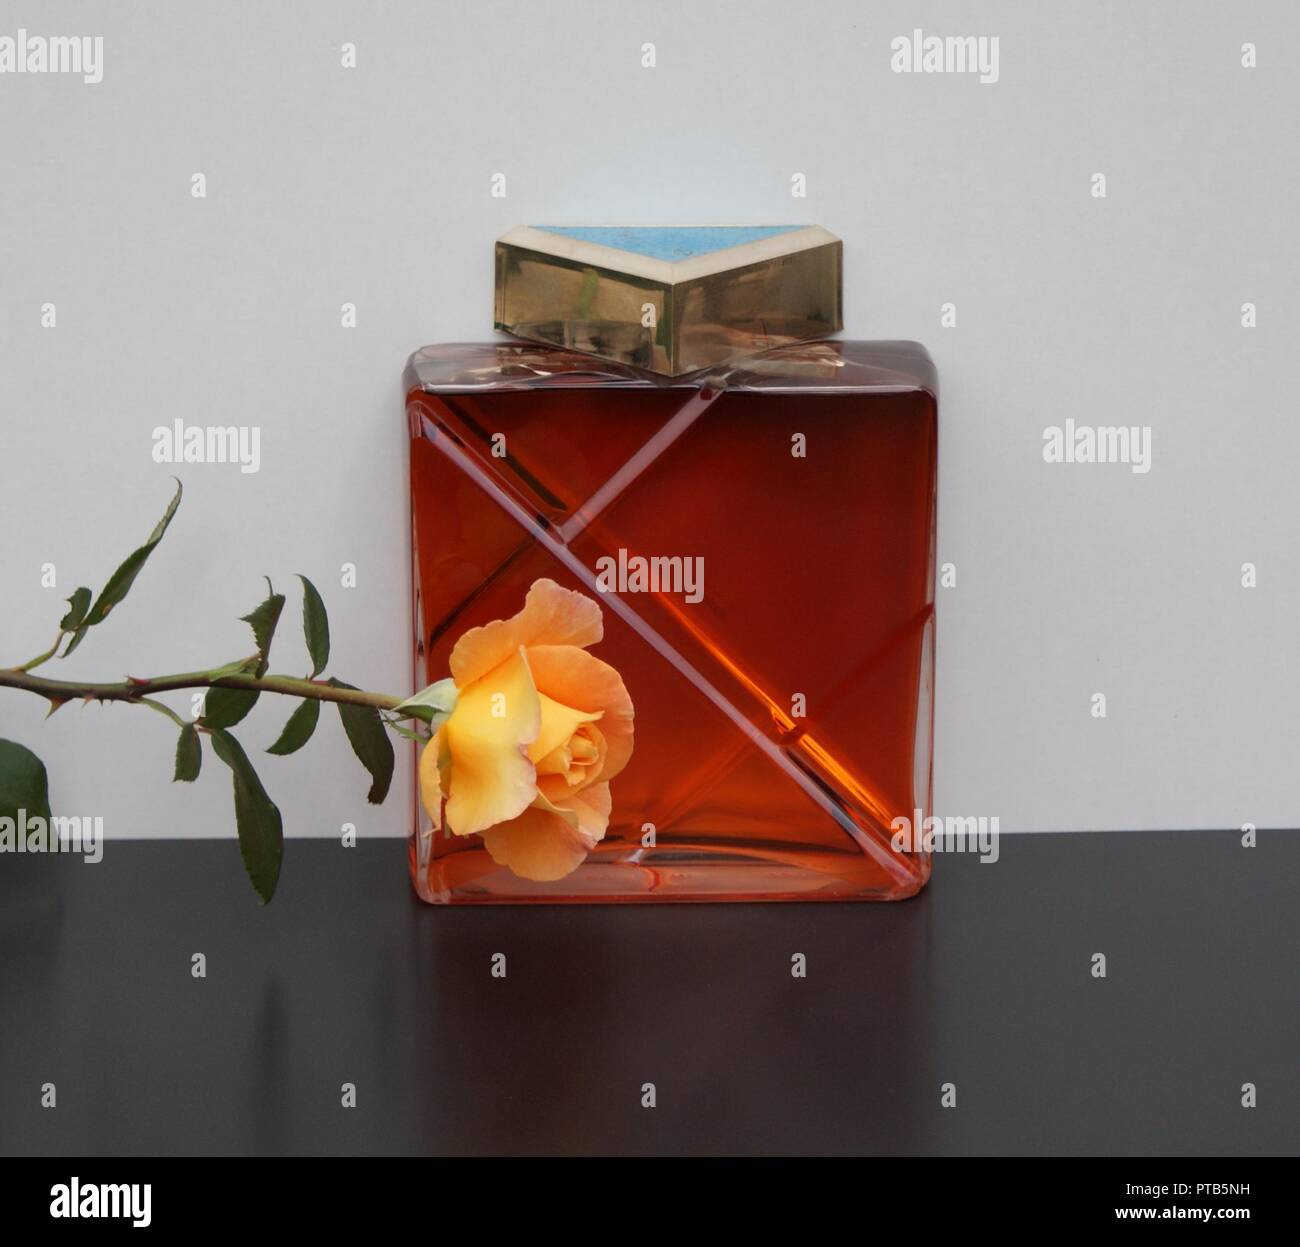 KL Homme, men's fragrance, large perfume bottle decorated with an English rose - Stock Image